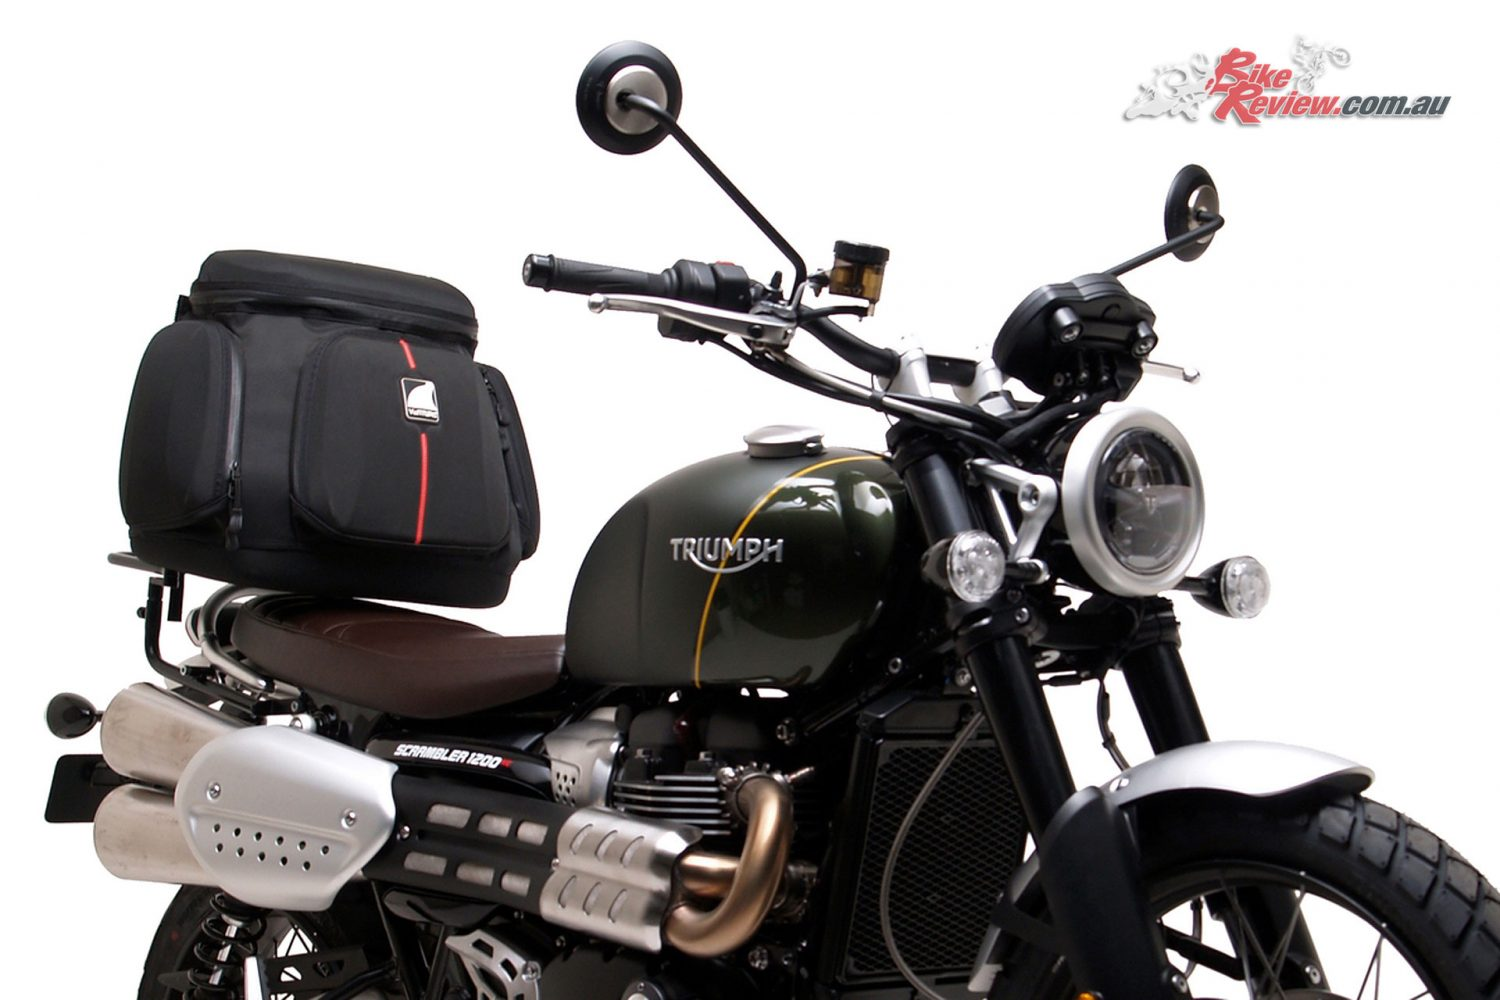 Ventura announce the full luggage range options for Triumph's new Scrambler 1200s